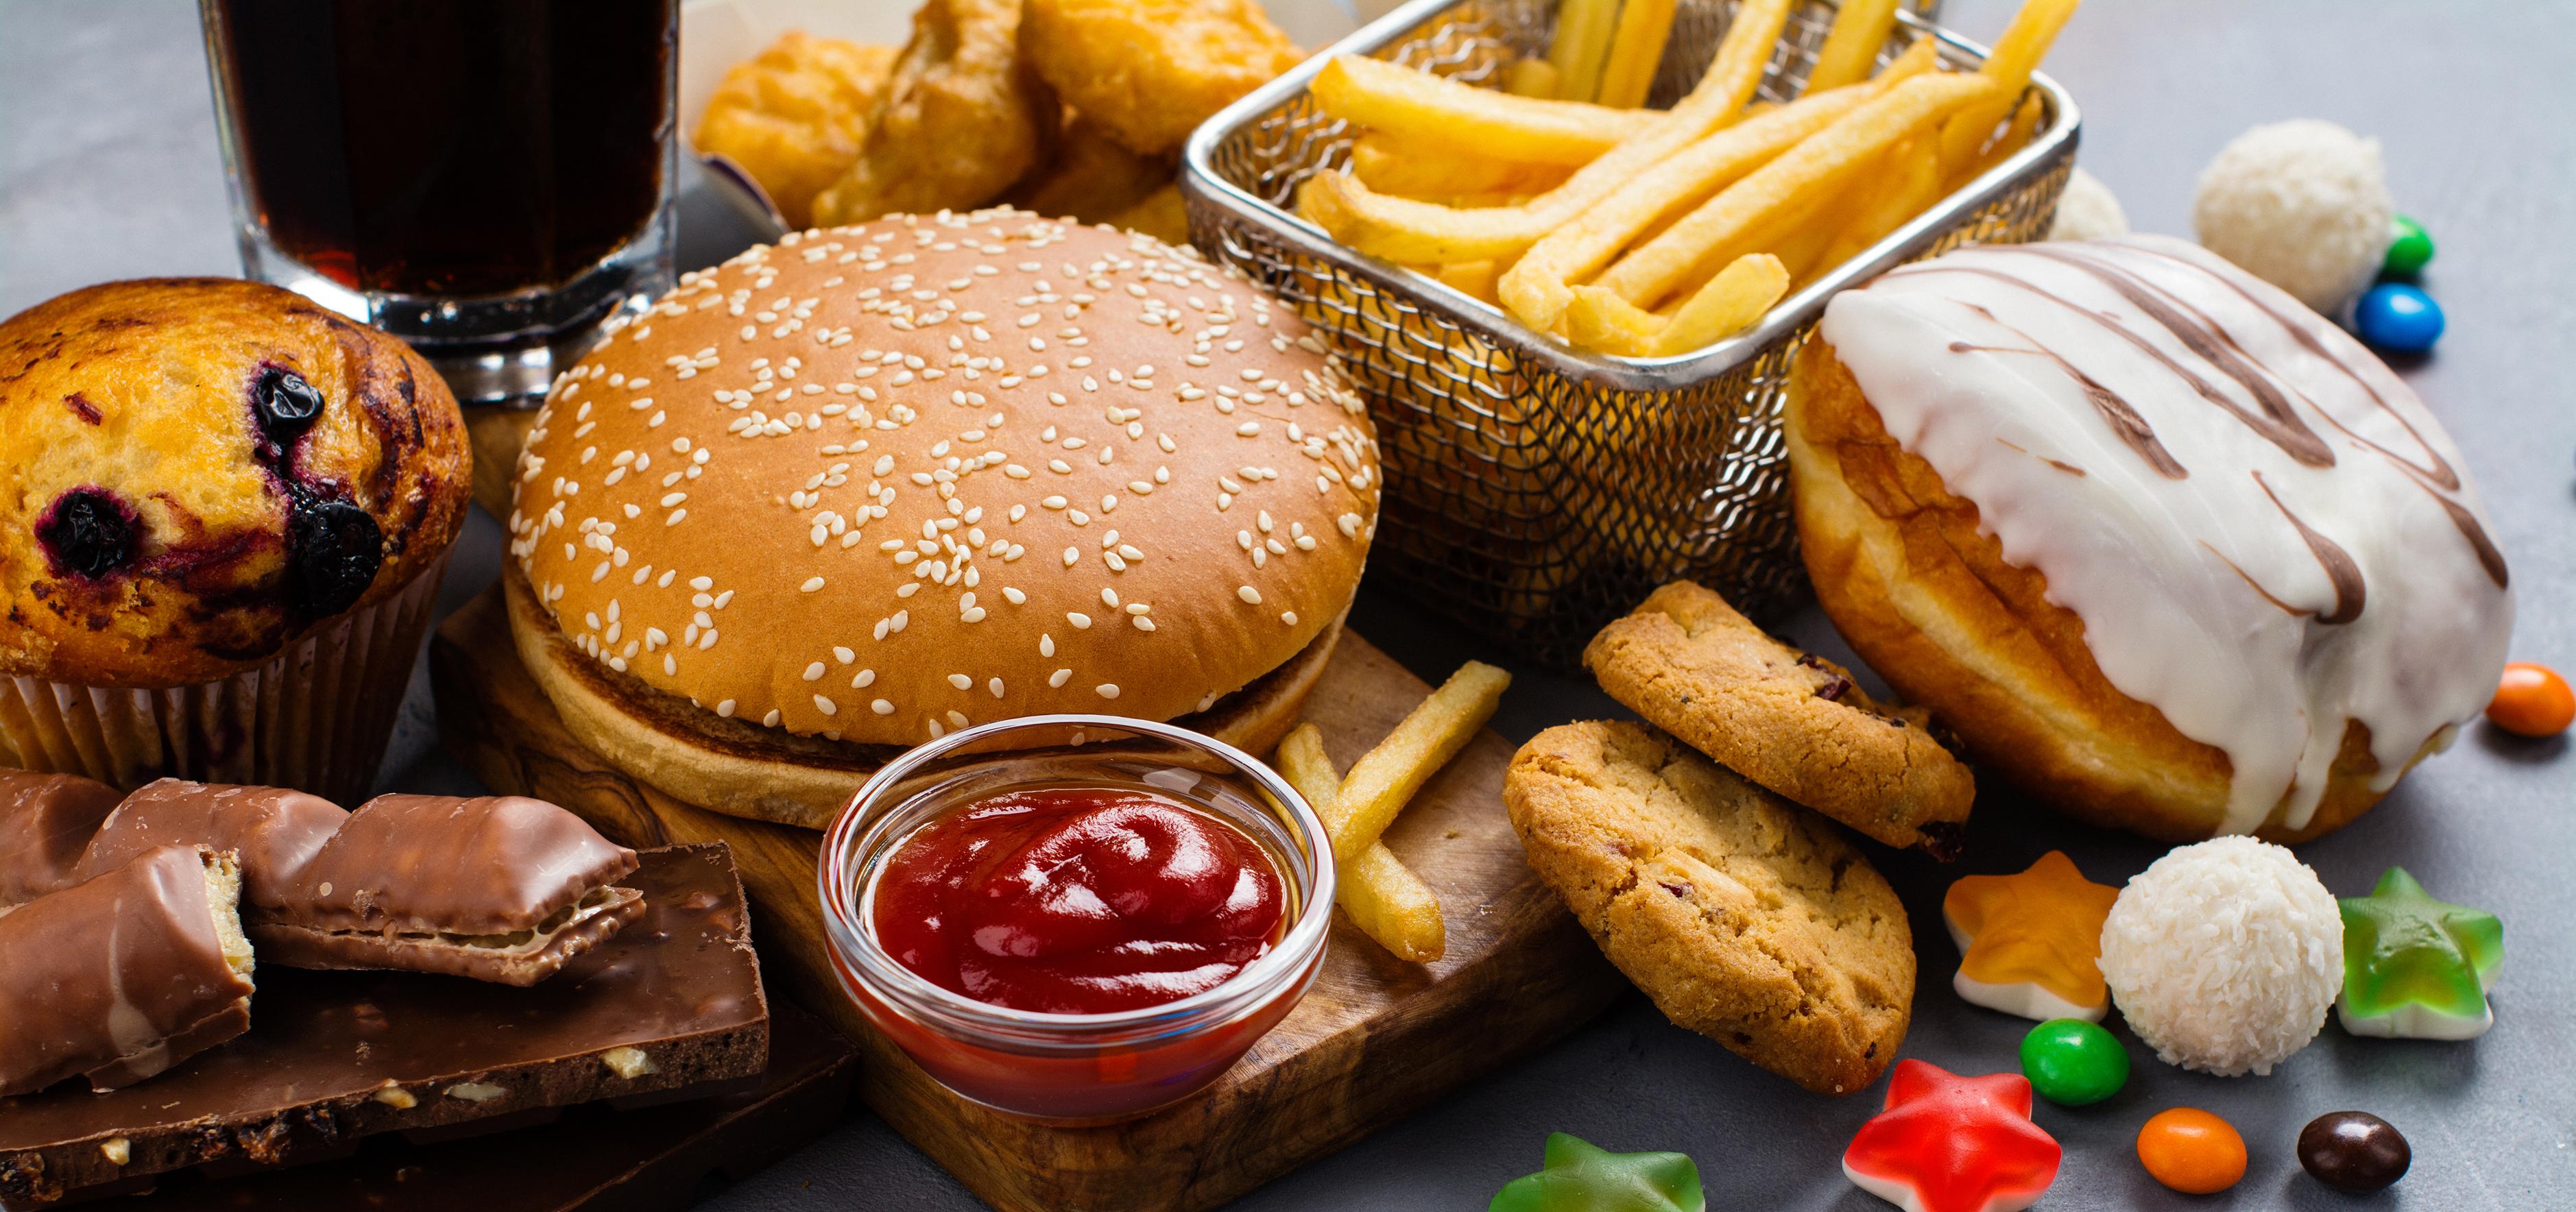 Junk foods including chocolate, hamburger, fried fast foods, iced doughnut, cola, and sugary sweets